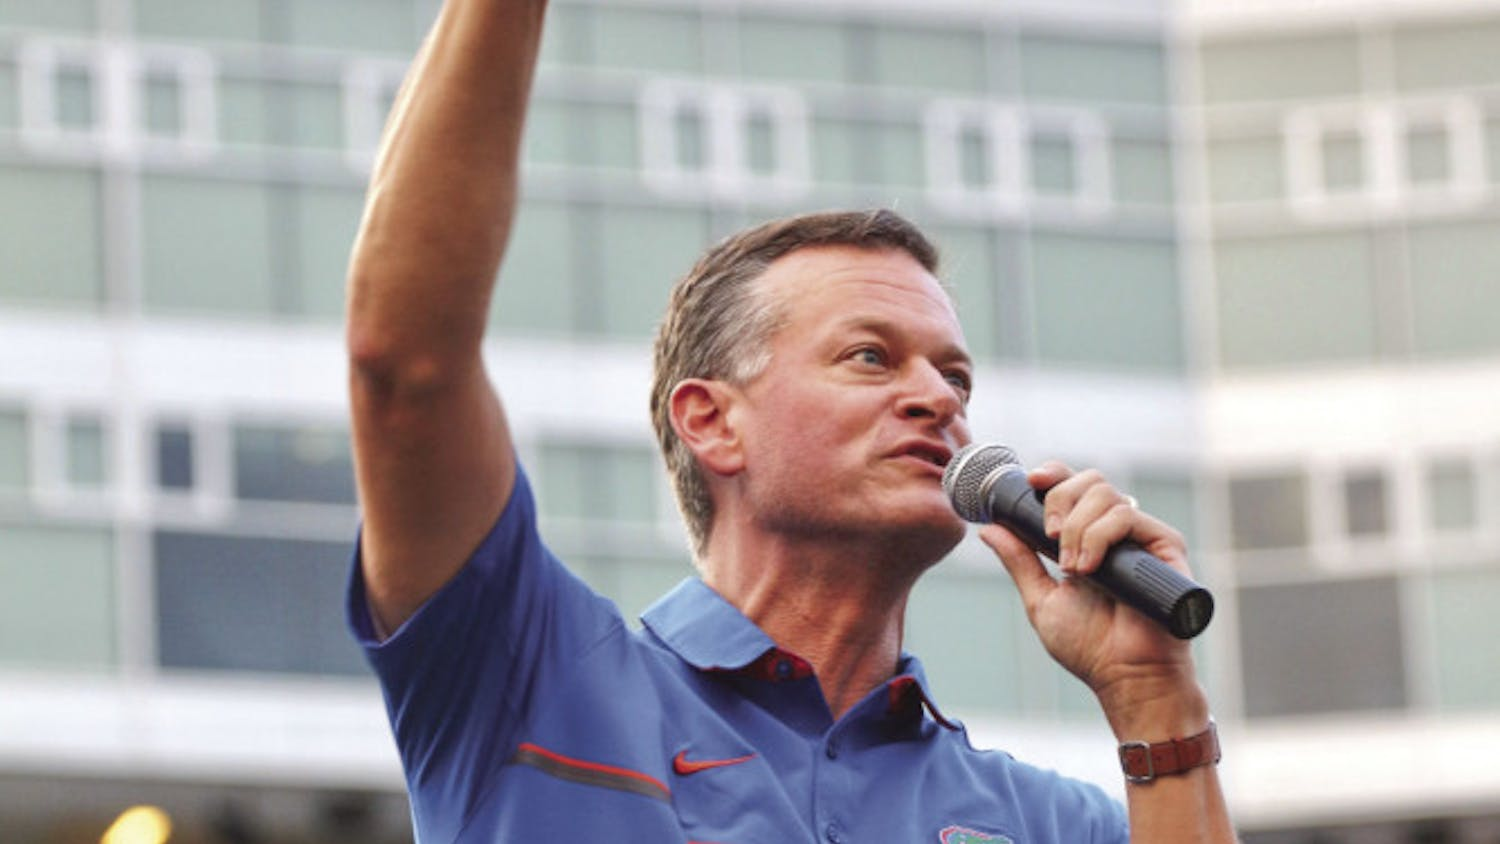 Scott Stricklin, 47, the UF athletic director, points to the audience in attendance, saying that without the support of the UF Student Body, the Gators' athletic success wouldn't be possible.